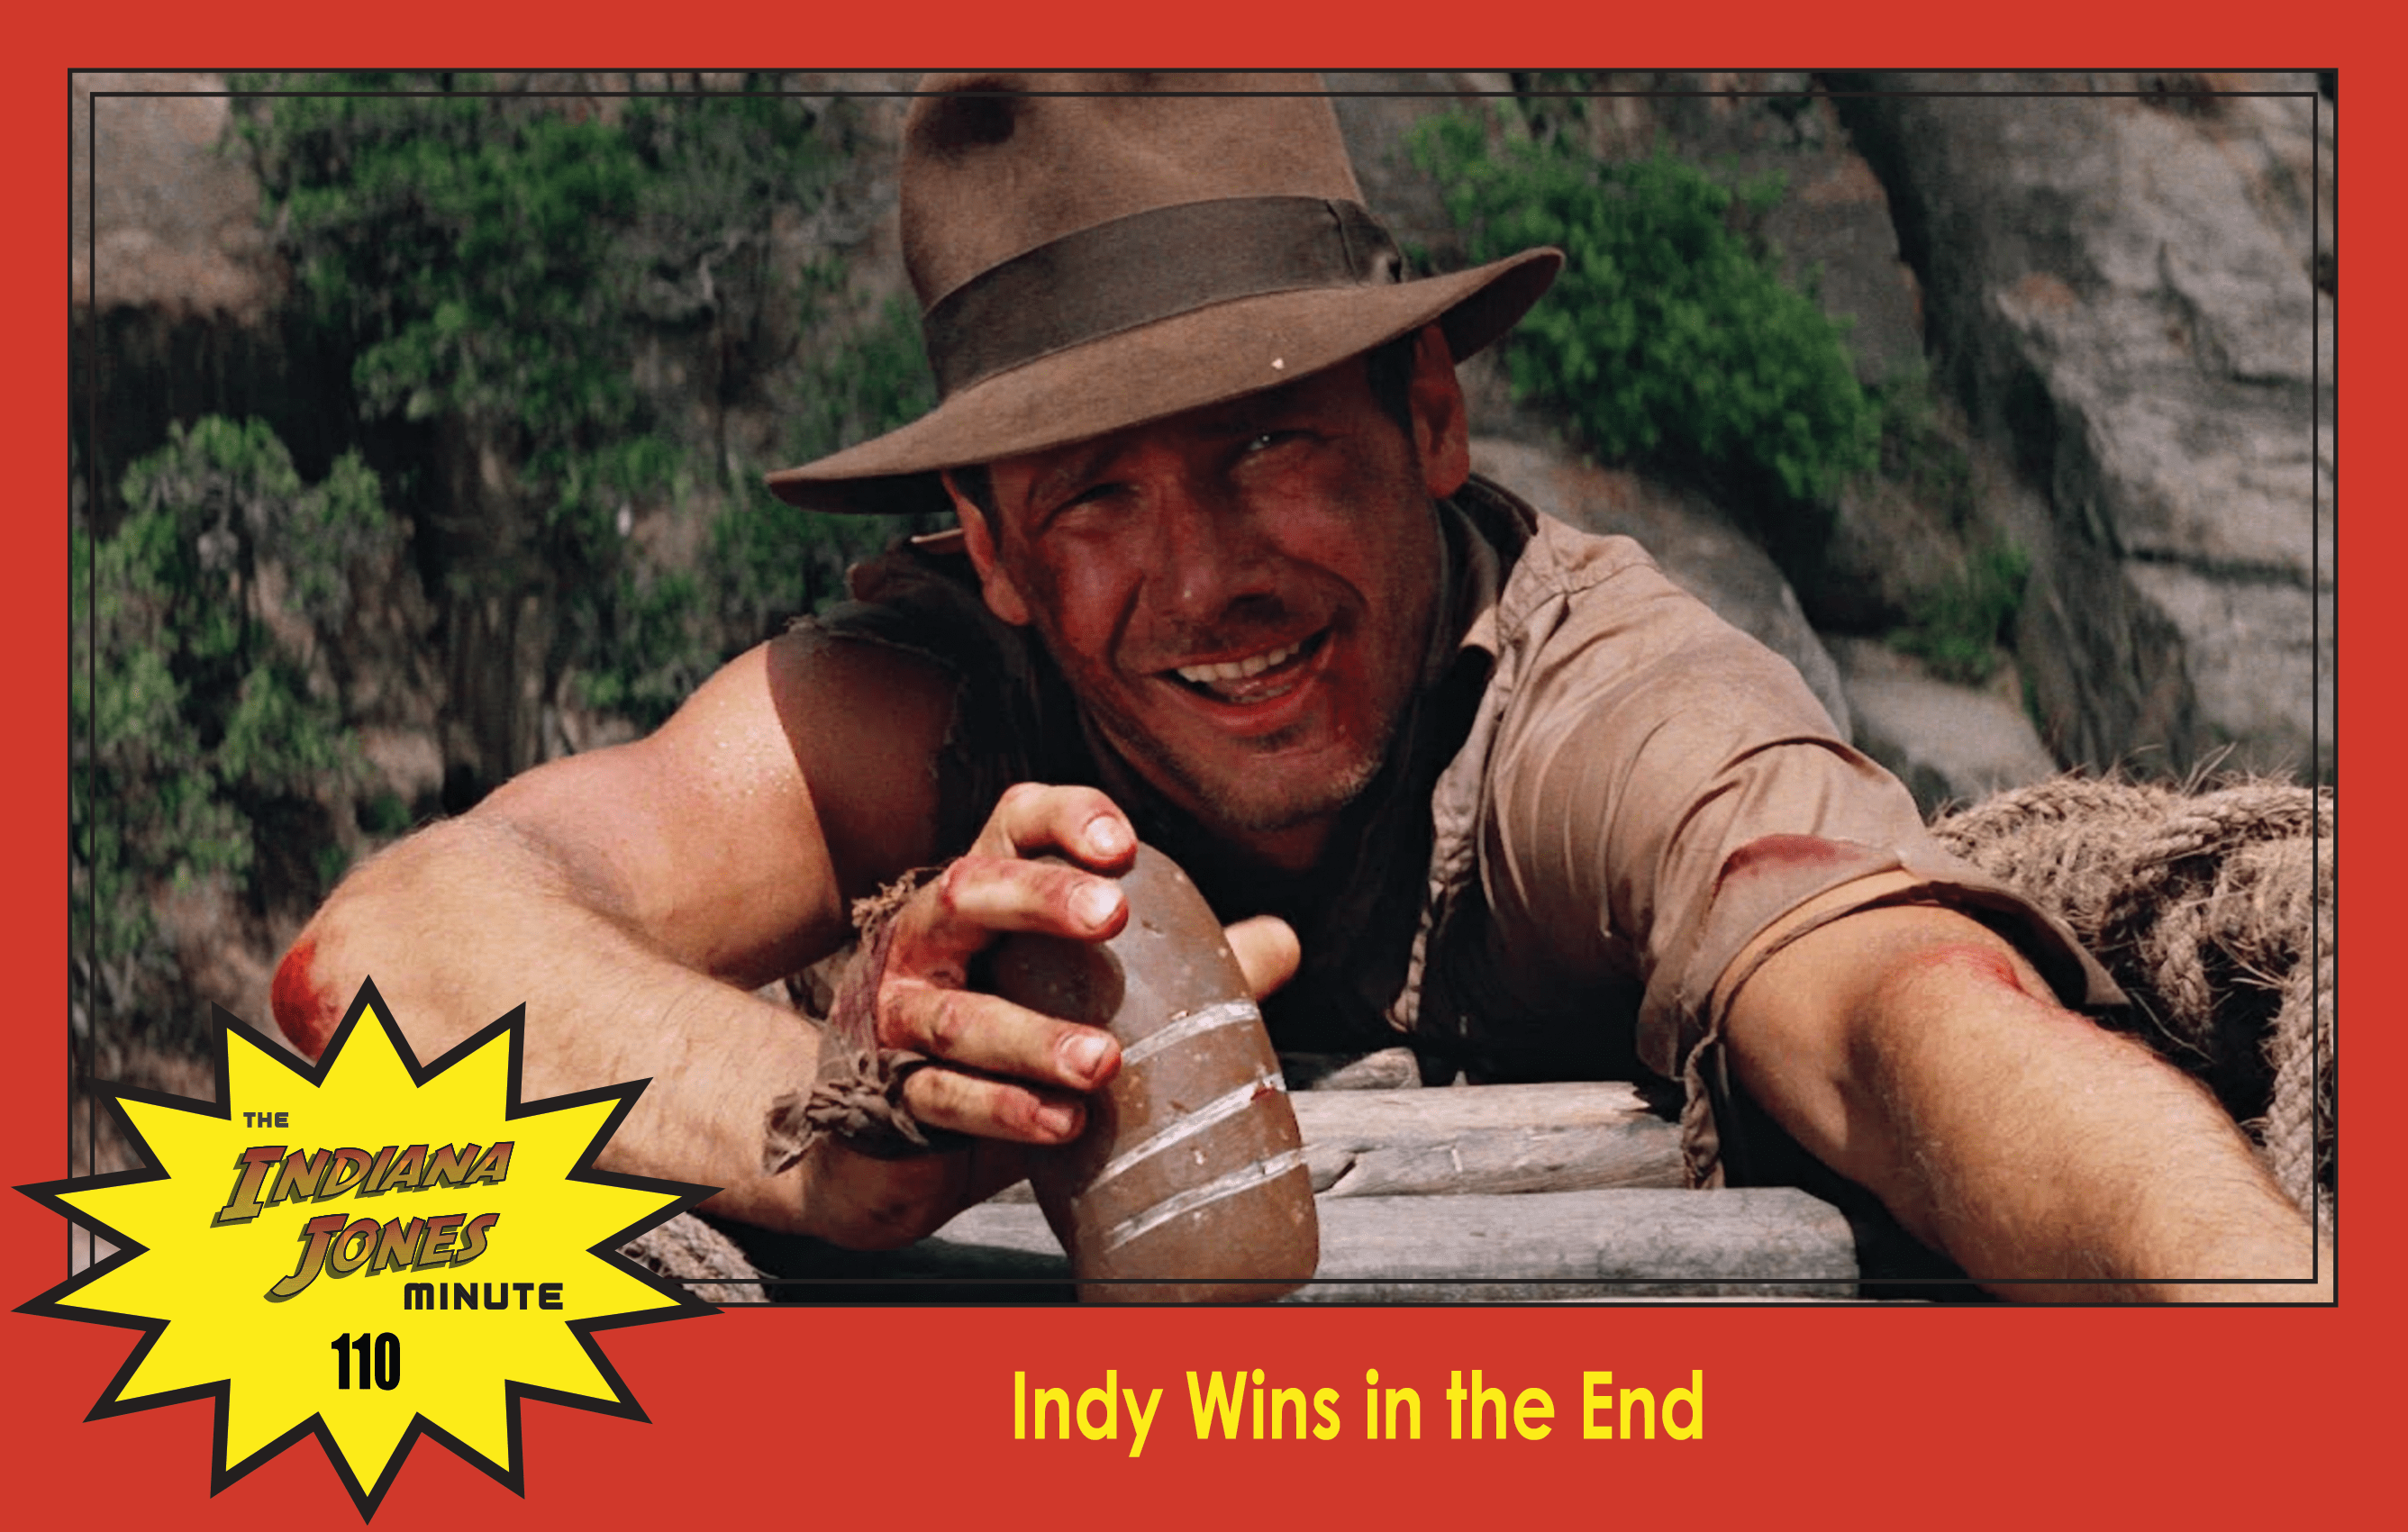 Temple of Doom Minute 110: Indy Wins in the End